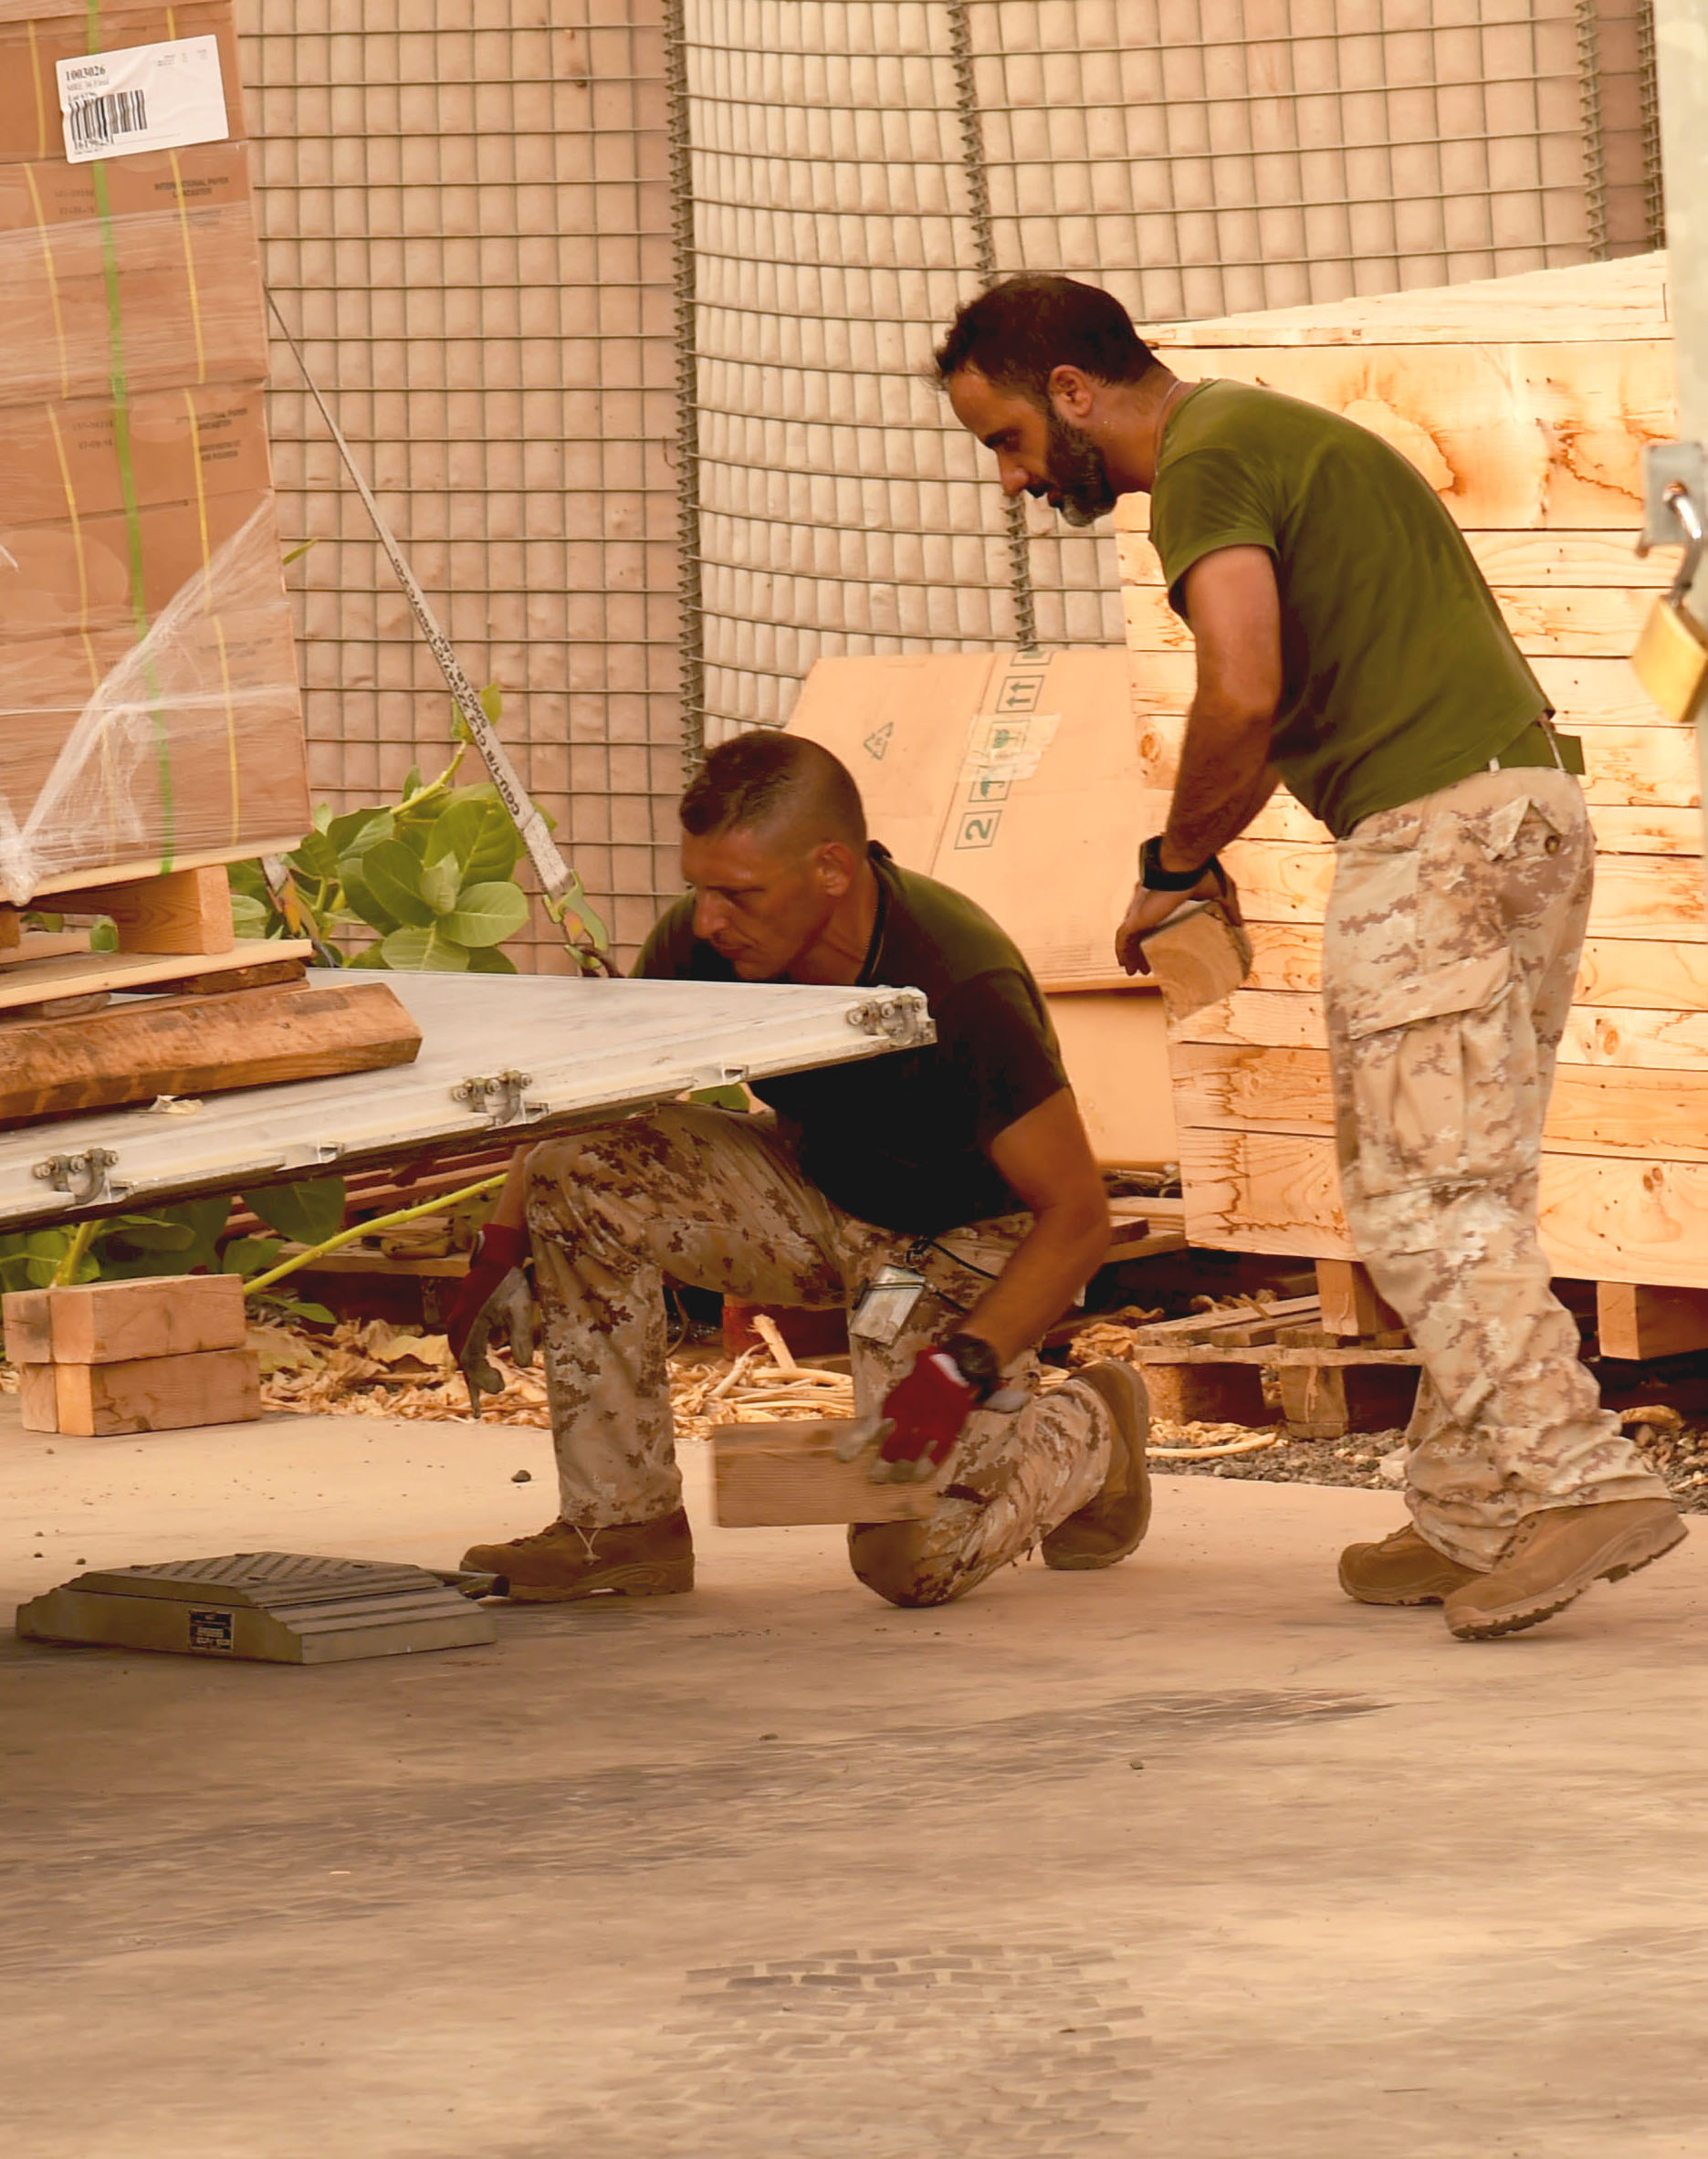 Two members of the Italian military retrieve a pallet of supplies from Combined Joint Task Force – Horn of Africa (CJTF-HOA) destined for Somalia via the Air Transportation and Refueling Exchange of Service (ATARES), at the Djibouti International Airport, Djibouti, June 6, 2017. The pallet was part of a proof-of-concept mission to see if CJTF-HOA would begin to implement the ATARES program. (U.S. Air National Guard photo by Tech. Sgt. Andria Allmond)